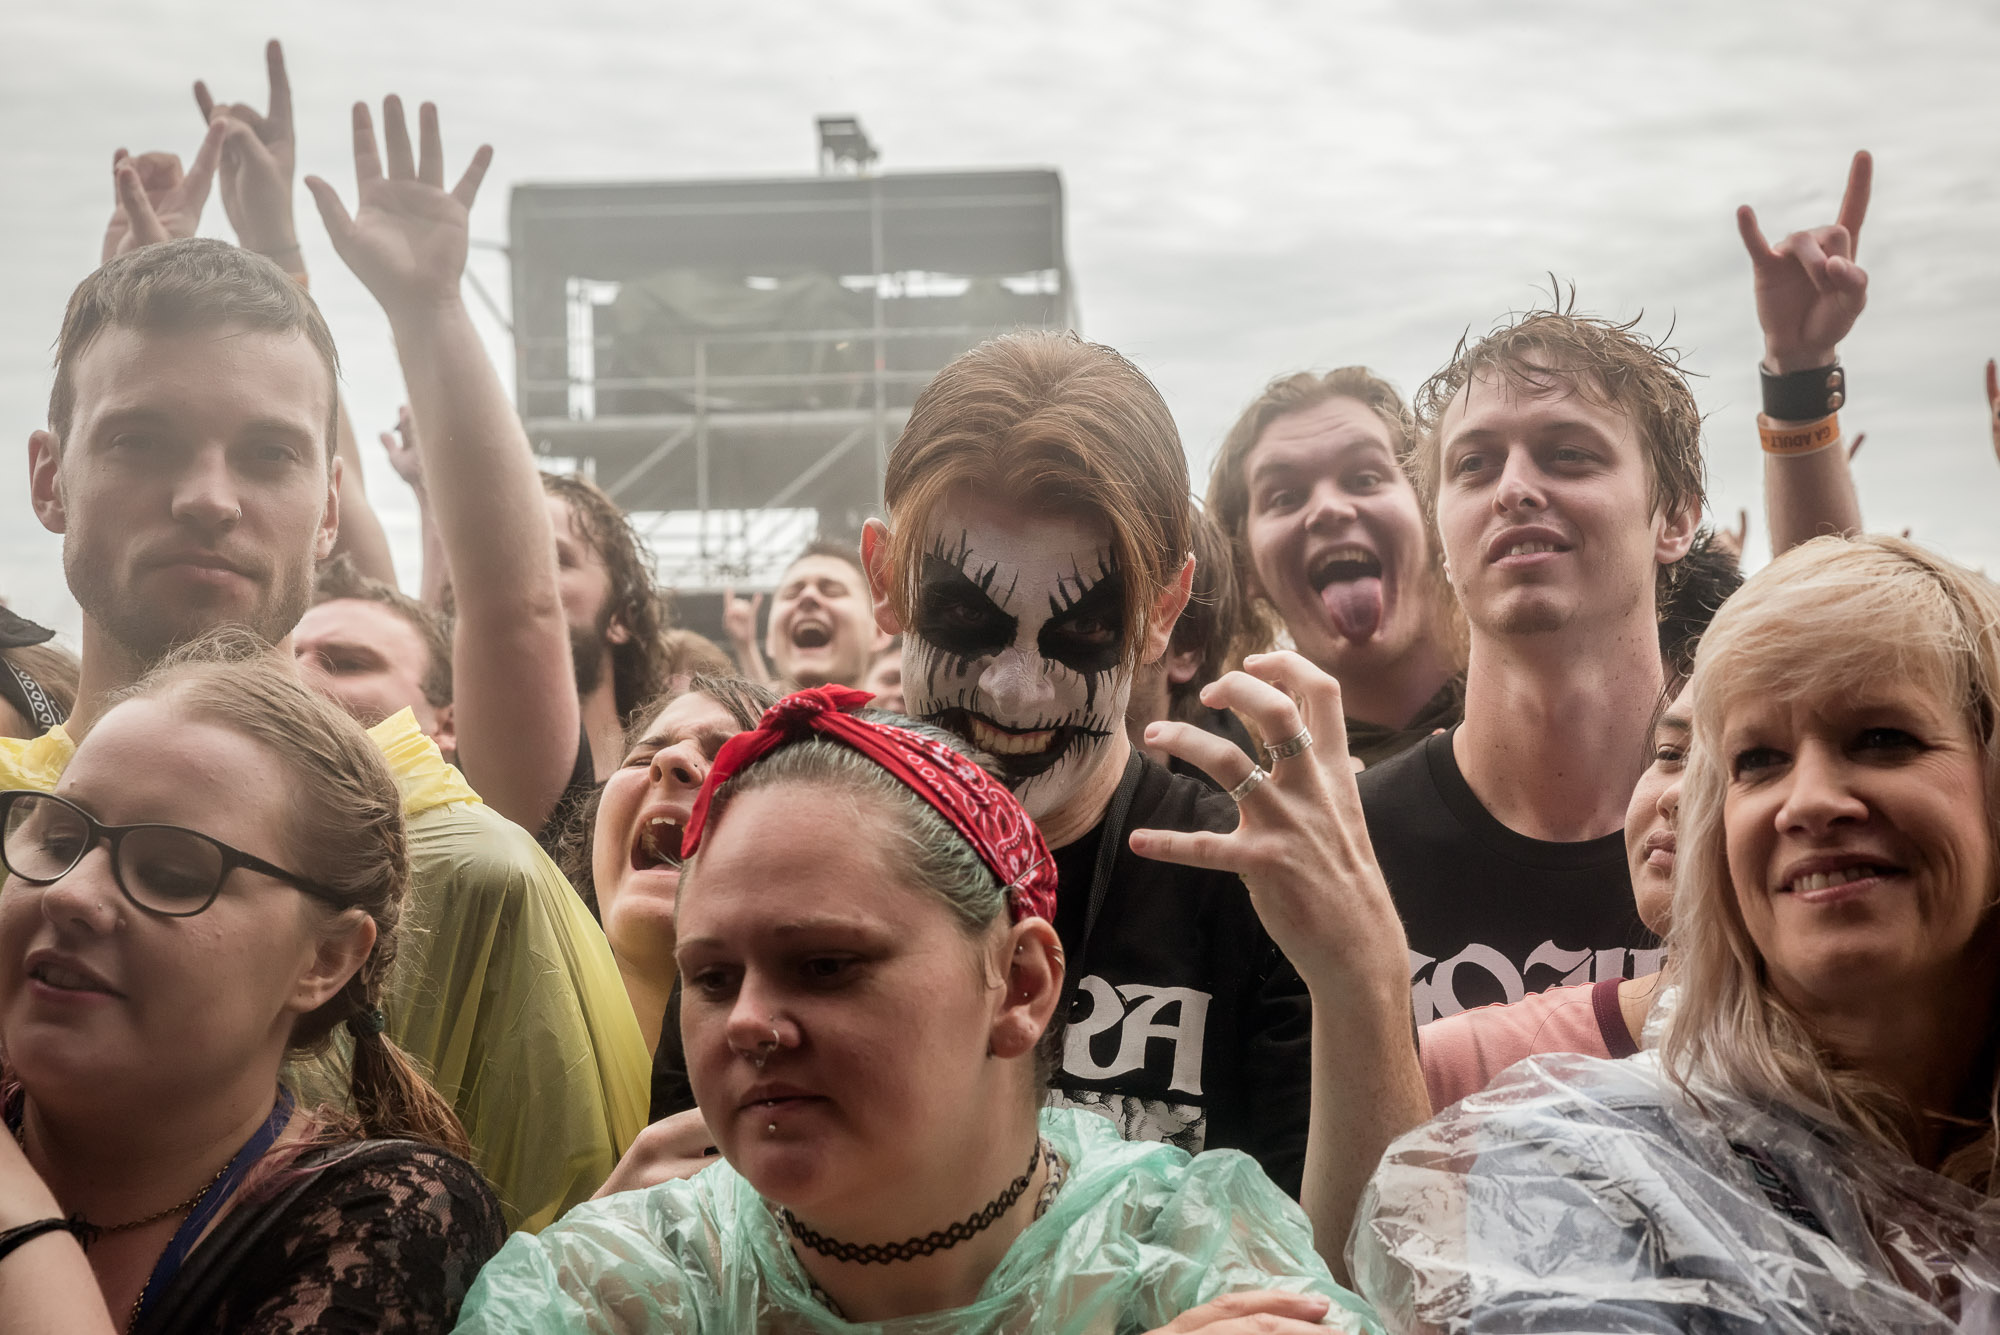 Download Festival Melbourne 2018 - Paul Tadday Photography - 010.jpg